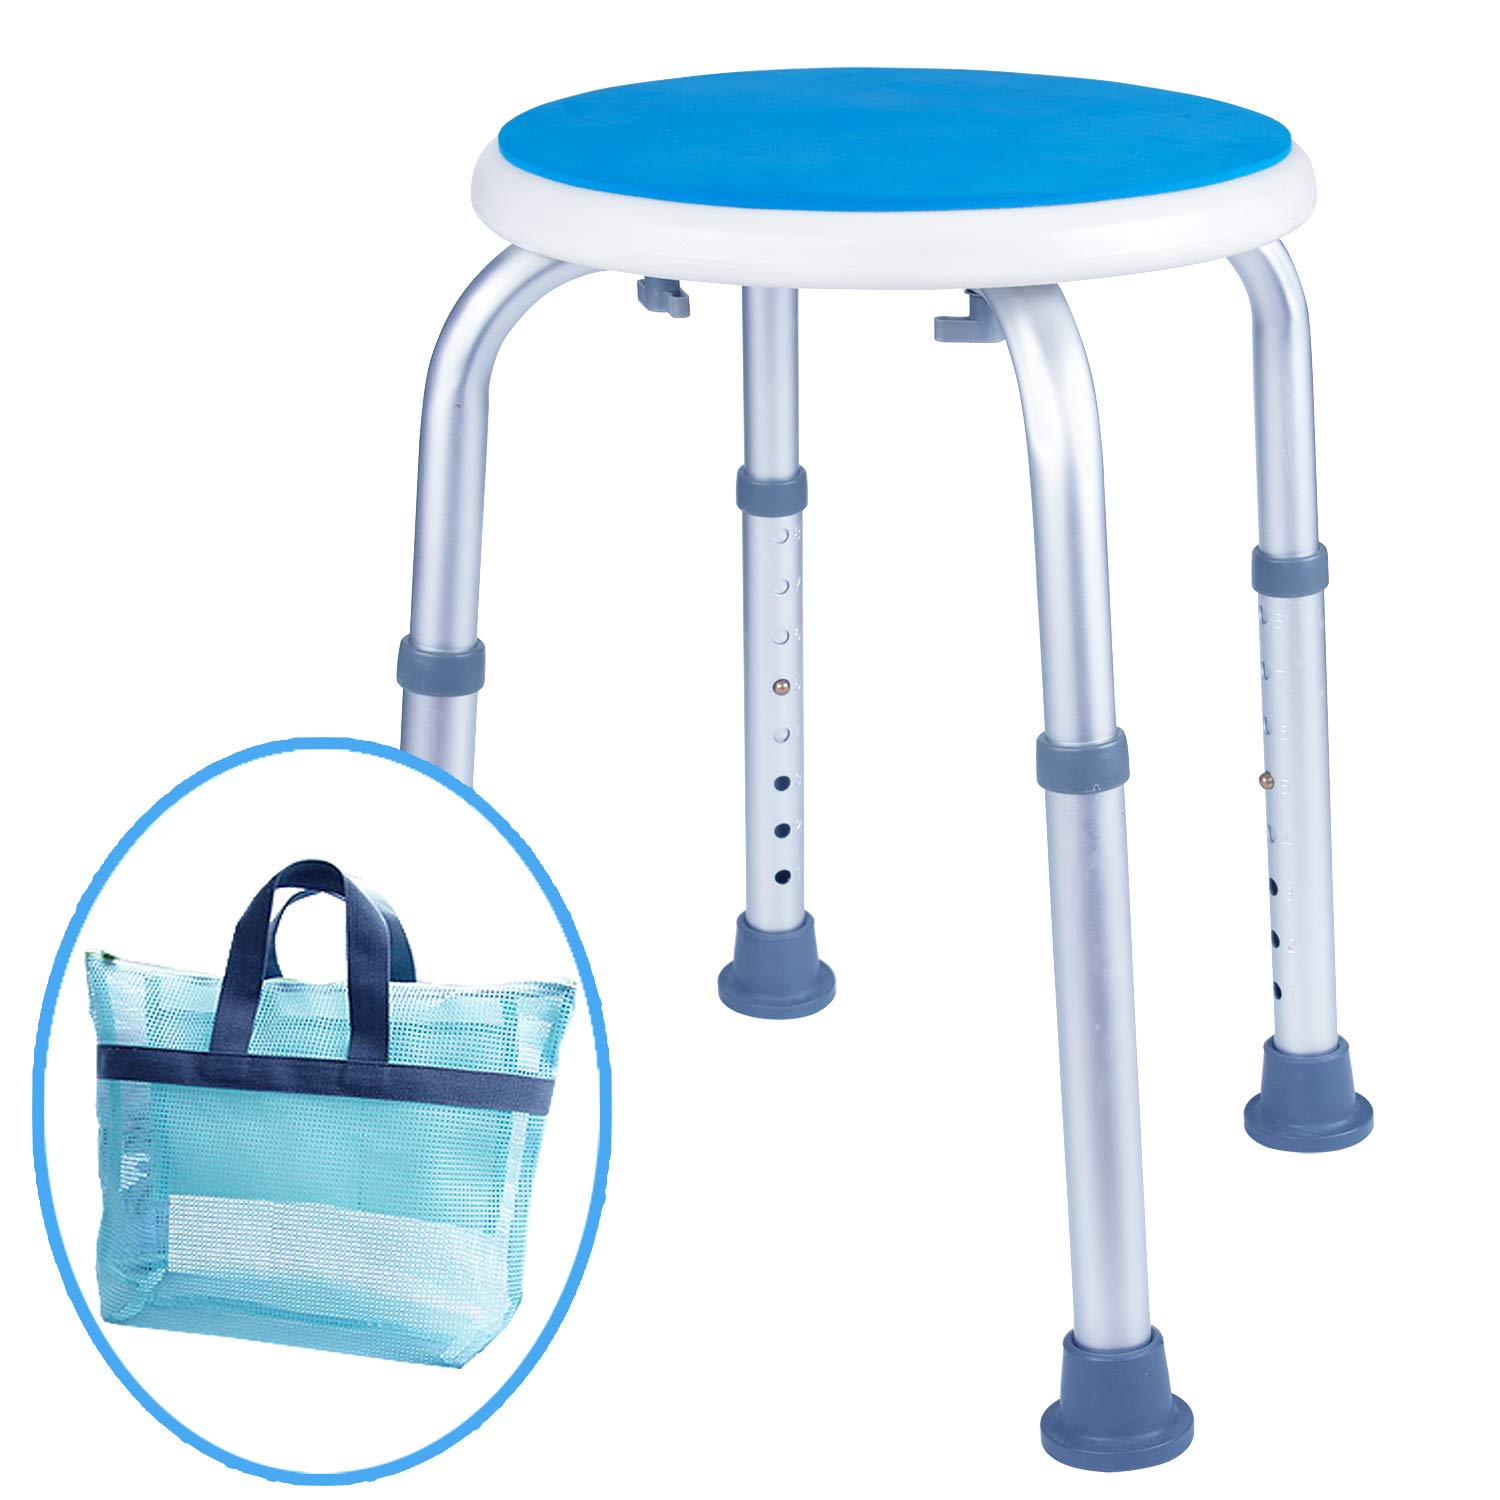 Medokare Padded Round Shower Stool - Shower Seat for Seniors with Tote Bag, Shower Bench Bath Chair for Elderly, Handicap Tub Shower Seats for Adults (White Round Stool) 61P2txq5wrL